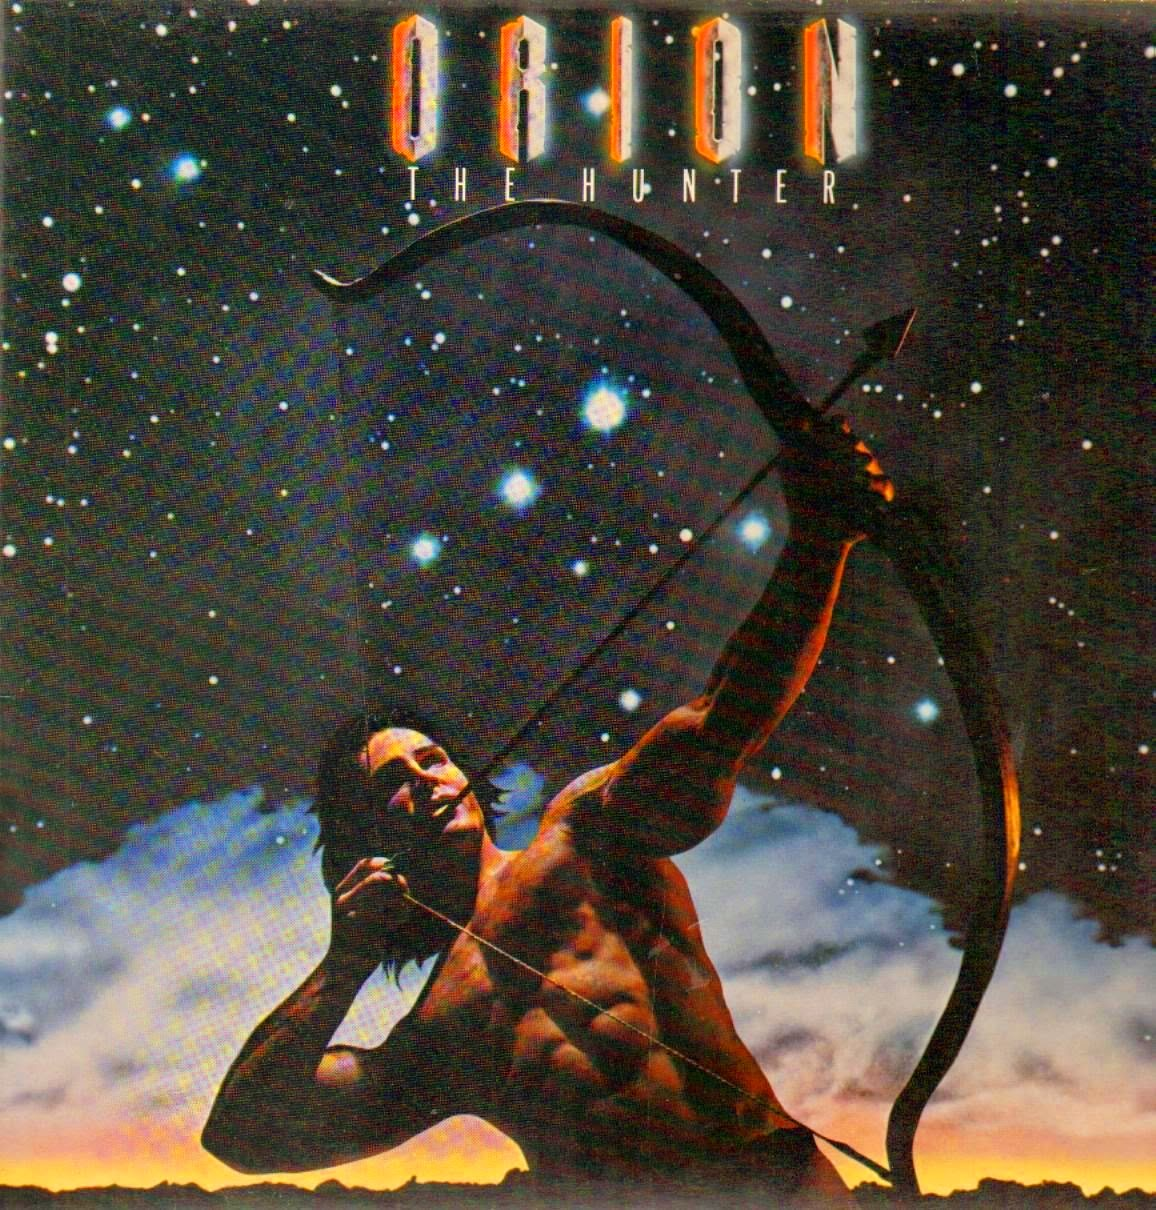 Orion the Hunter st 1984 aor melodic rock